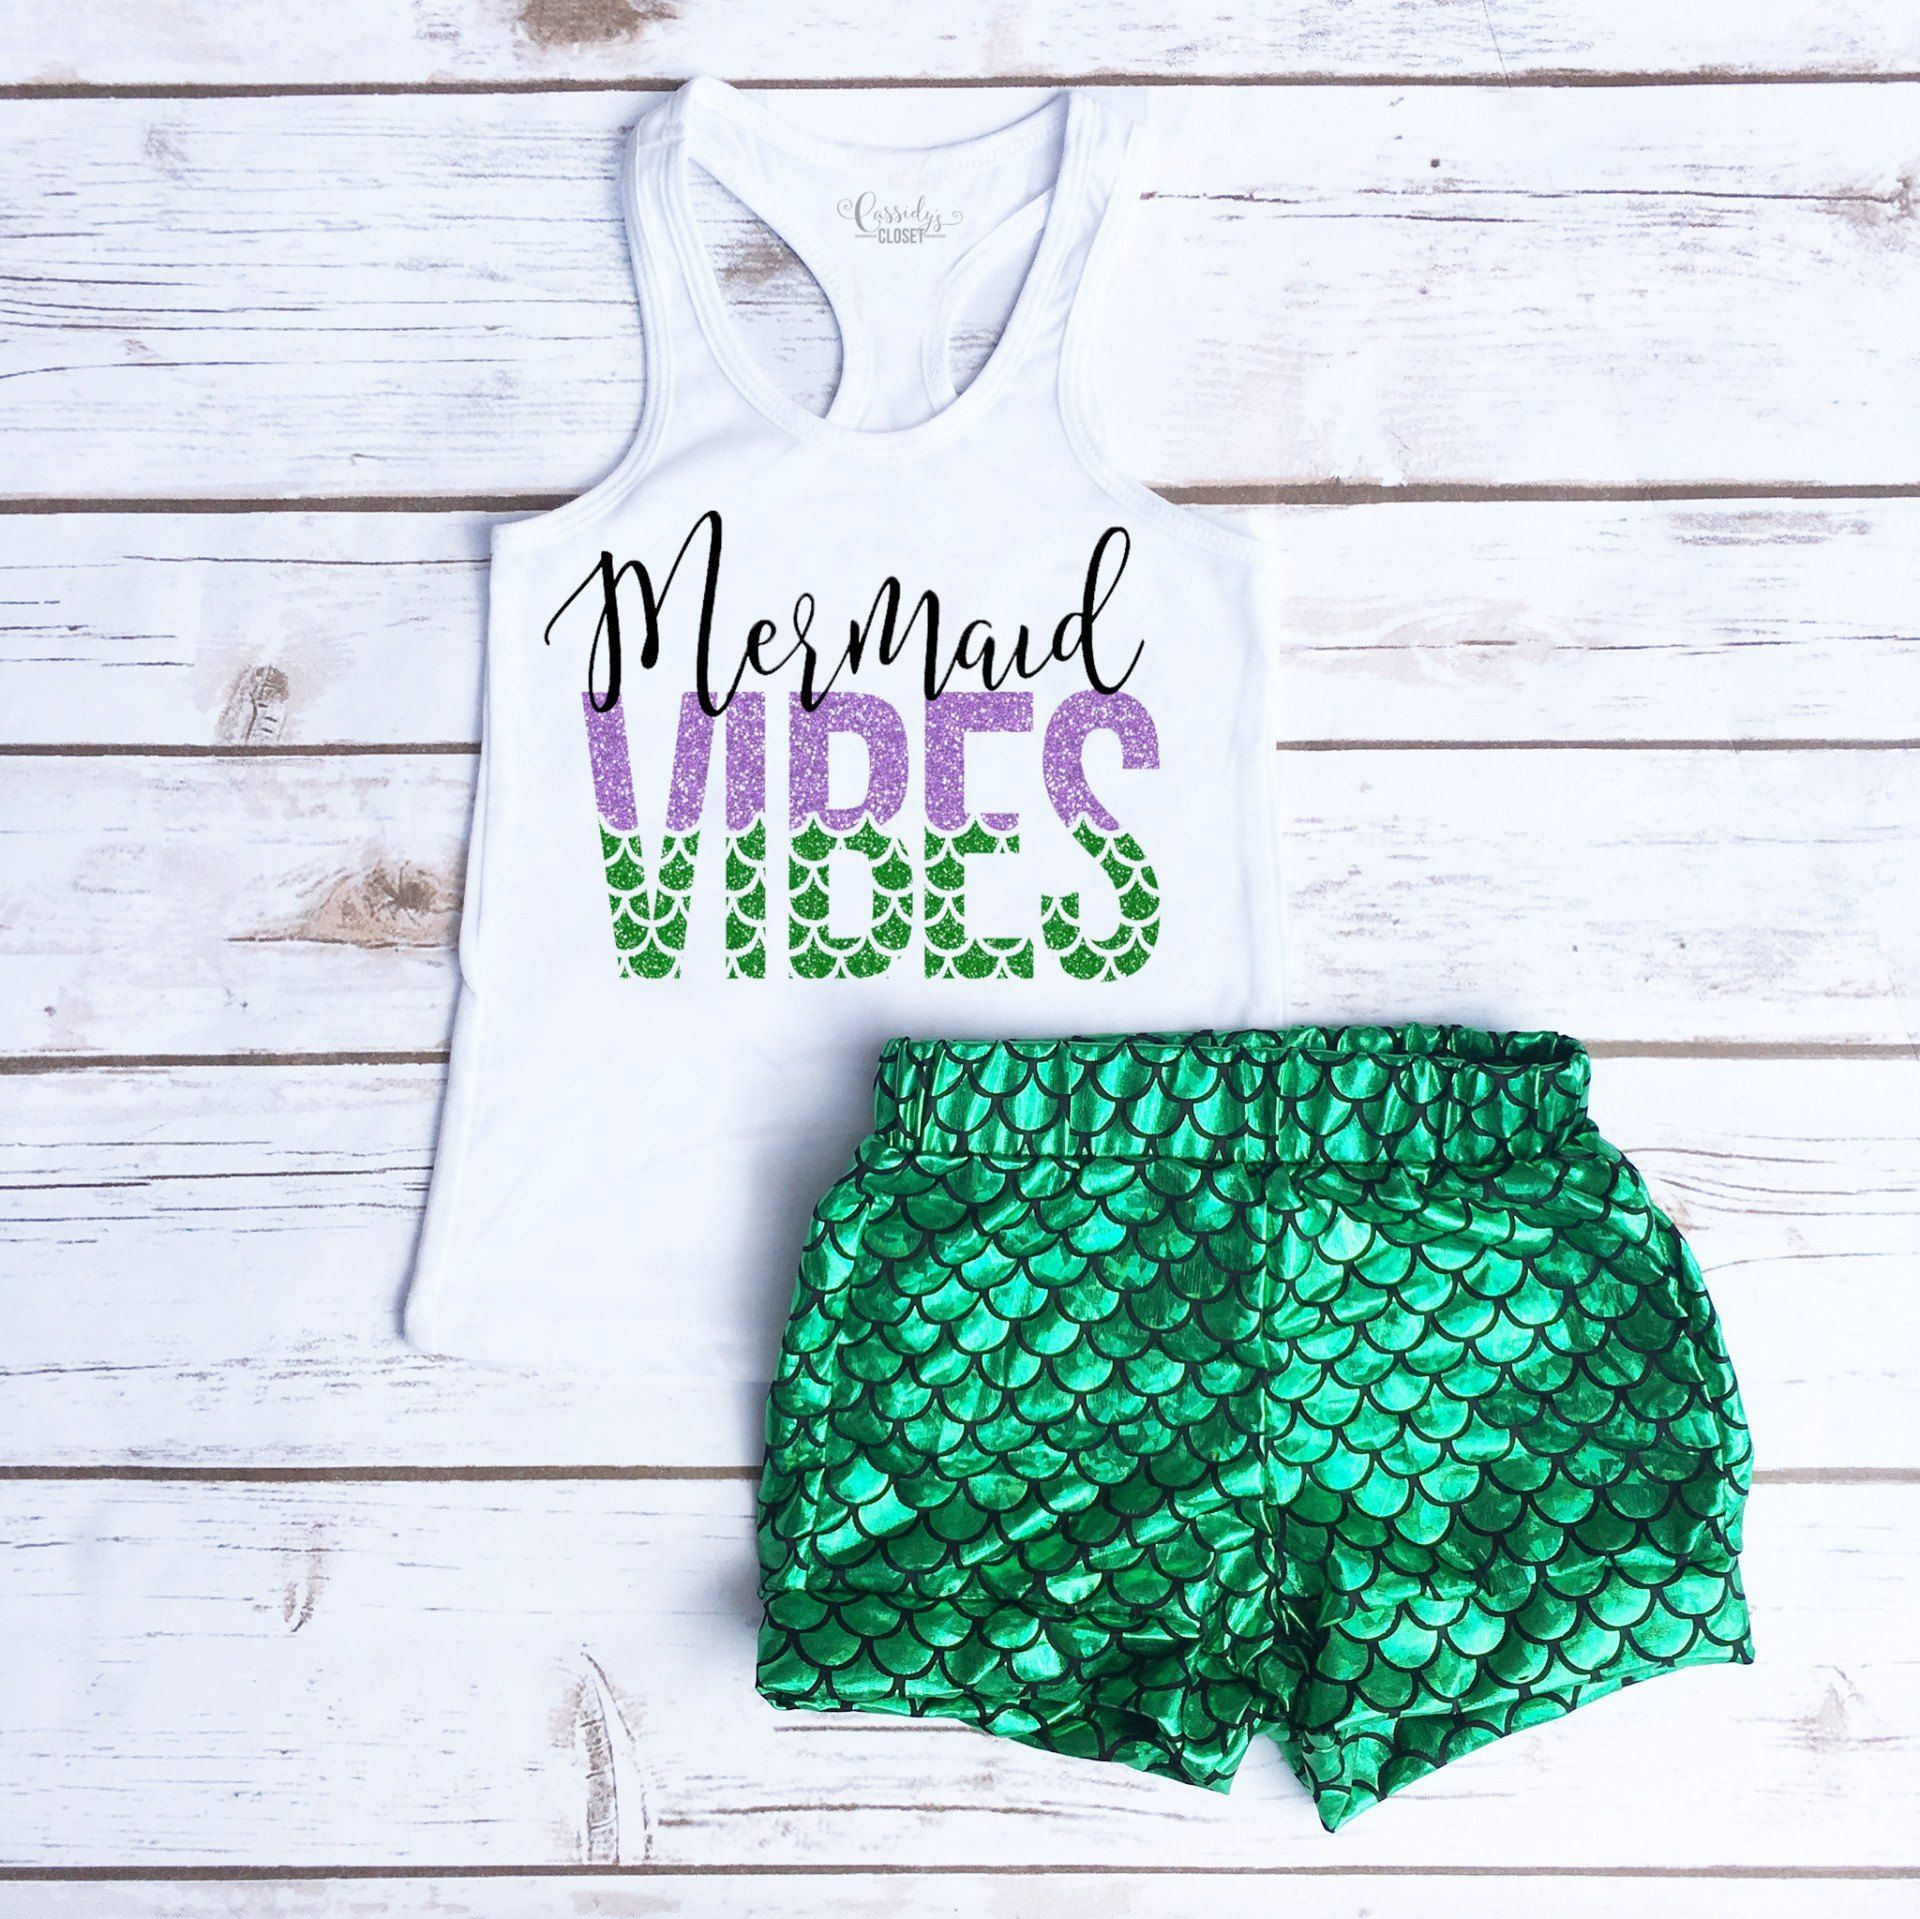 Mermaid Vibes Girl s TANK TOP